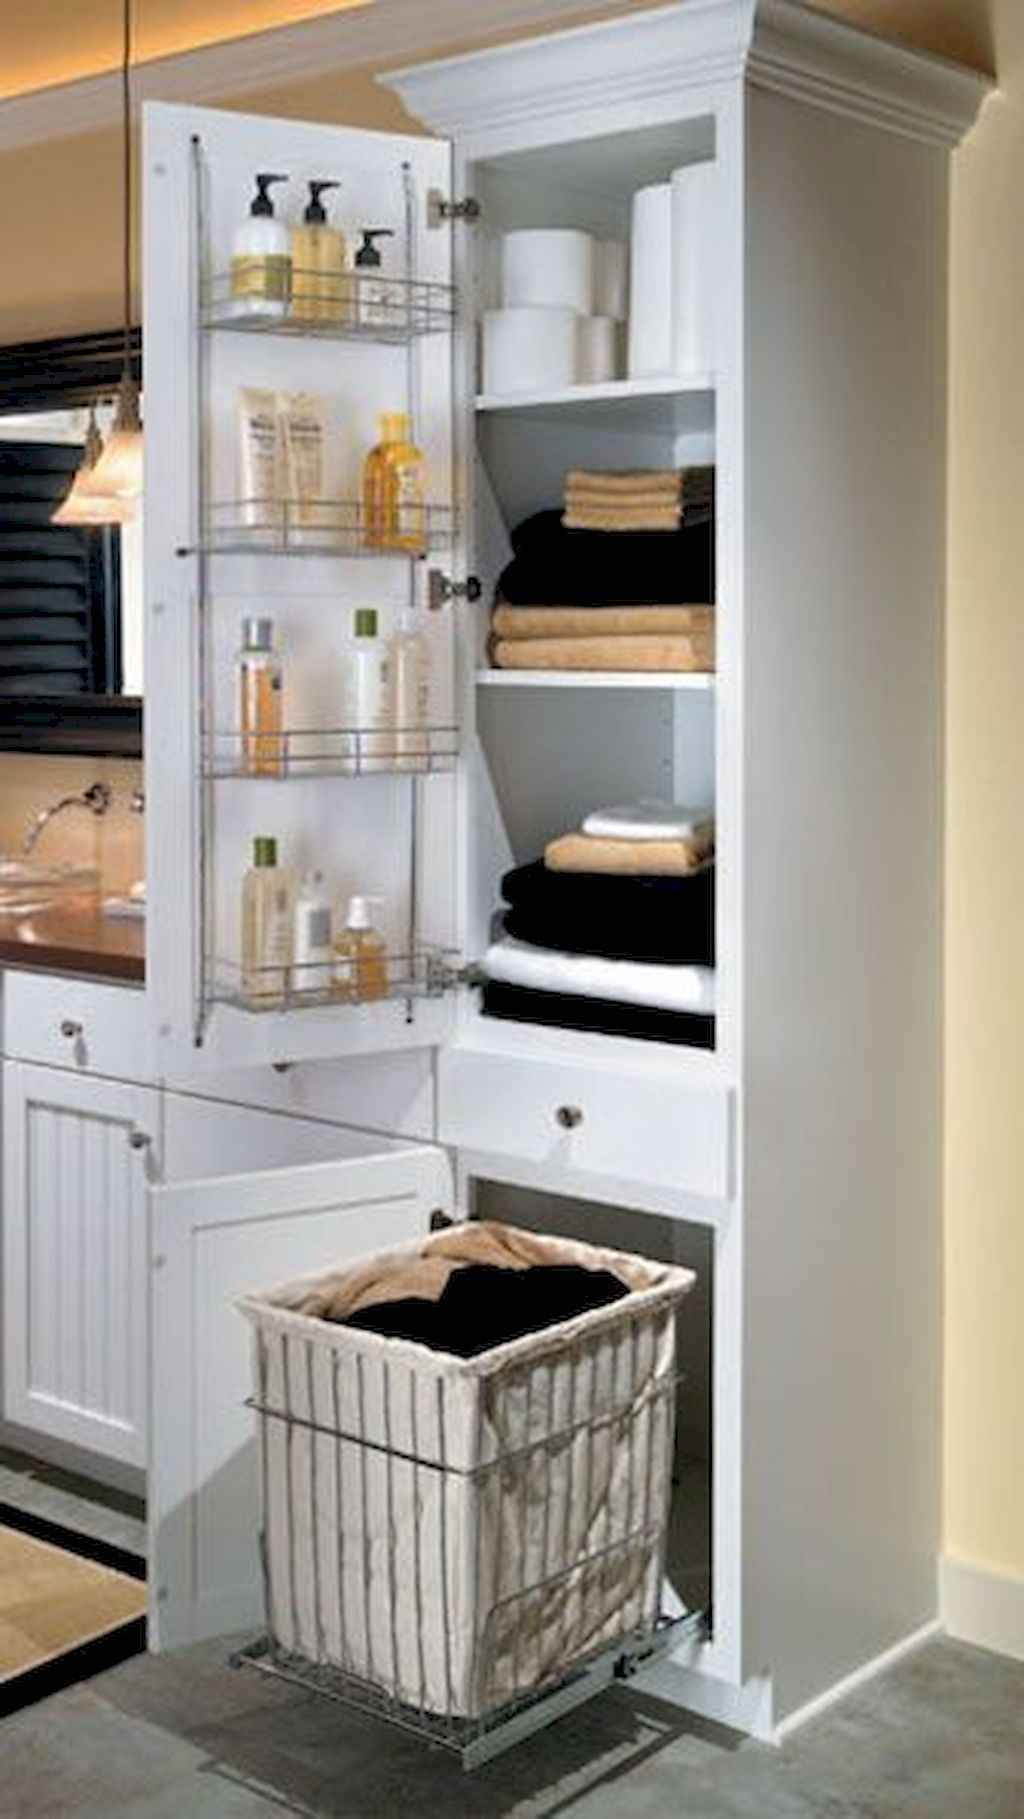 111 awesome small bathroom remodel ideas on a budget (4)